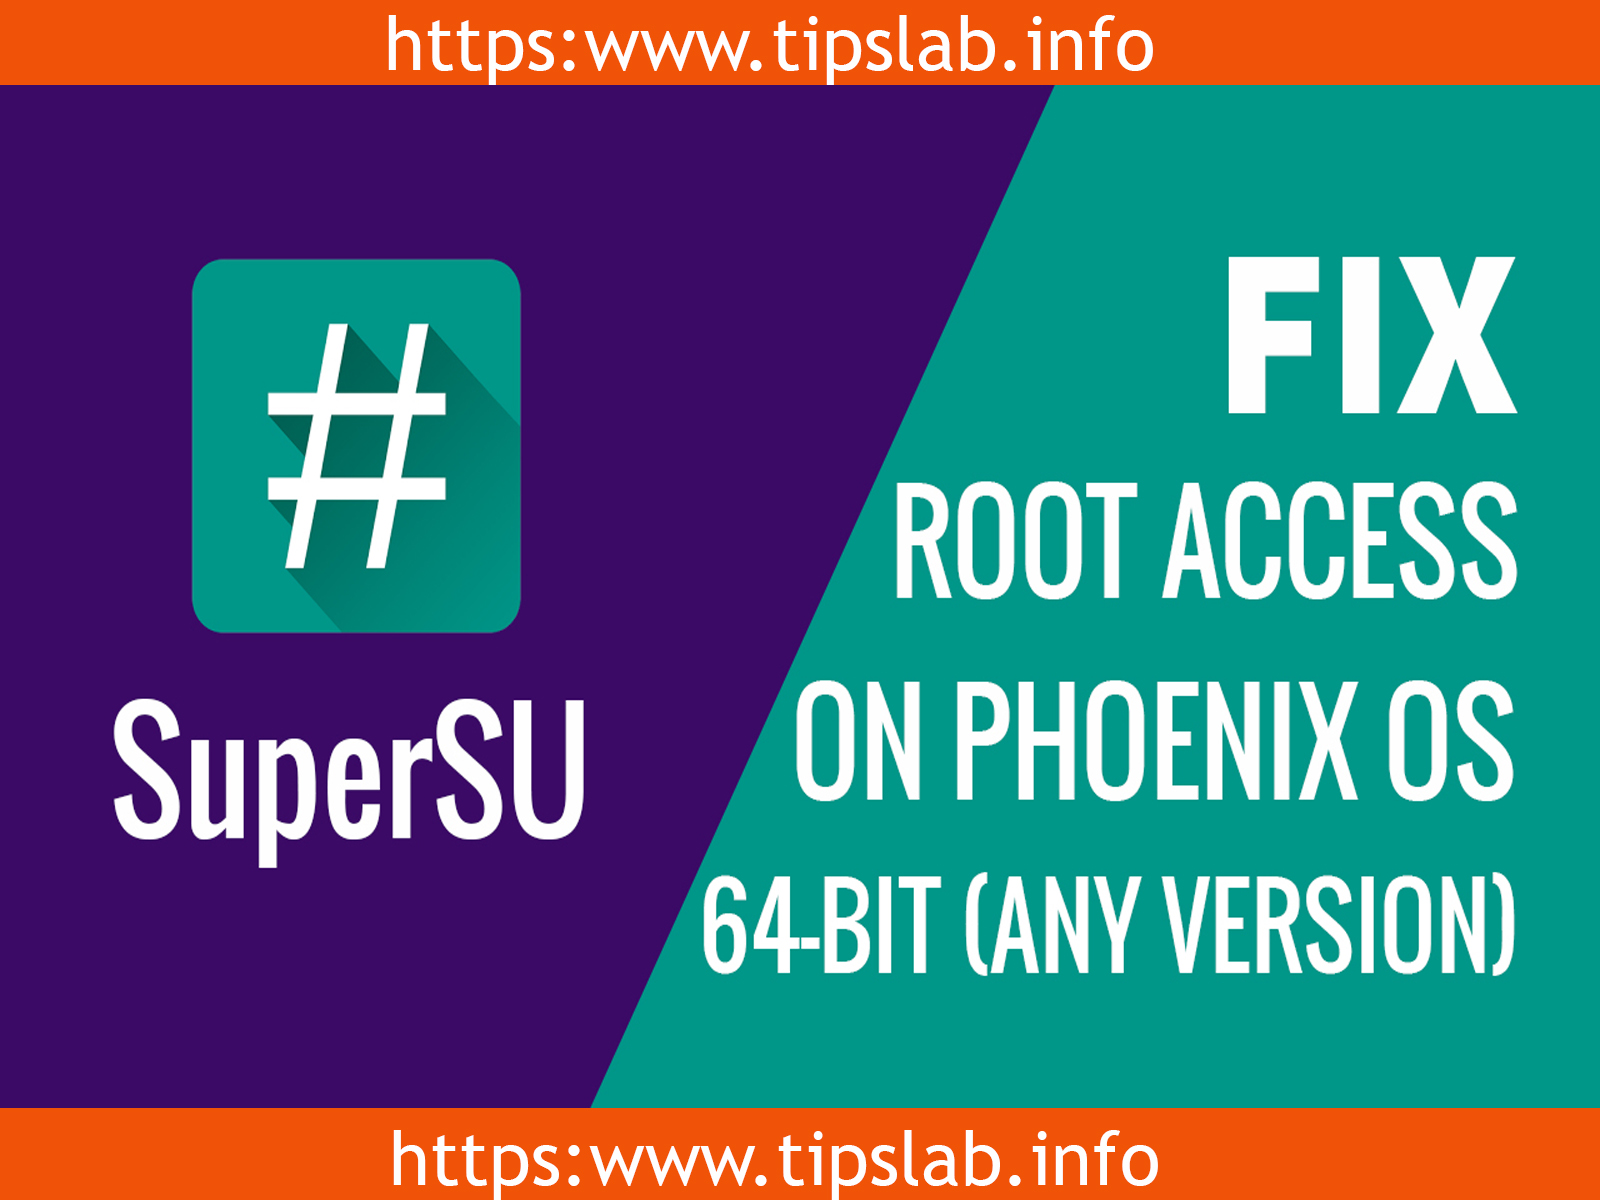 How To Fix Lost Root Access With SuperSU On Phoenix OS 64